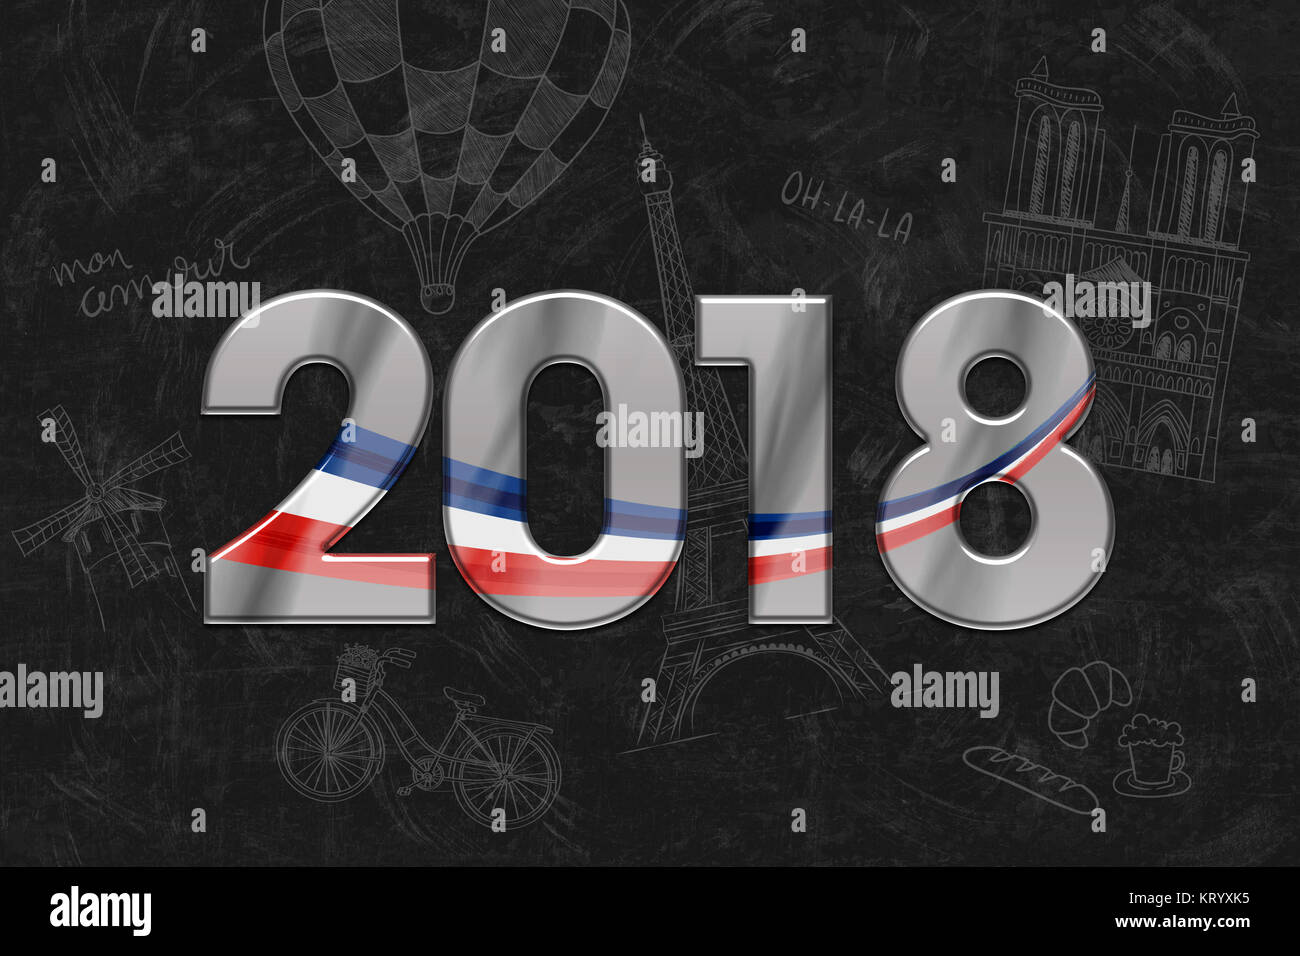 2018 new year greetings bonne annee meilleurs voeux stock image